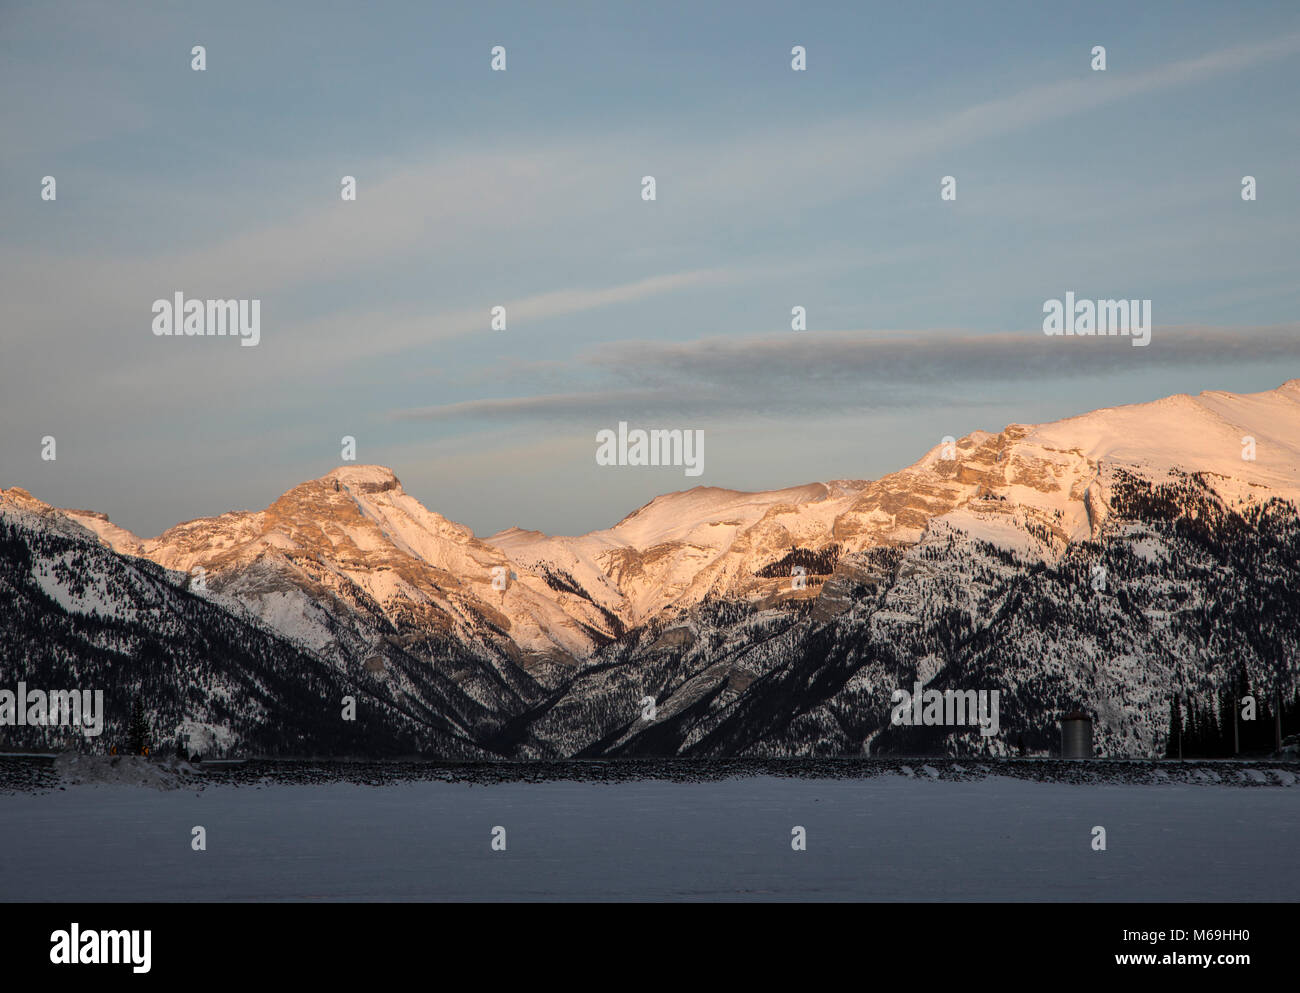 The Rocky Mountains near Canmore, Alberta. - Stock Image